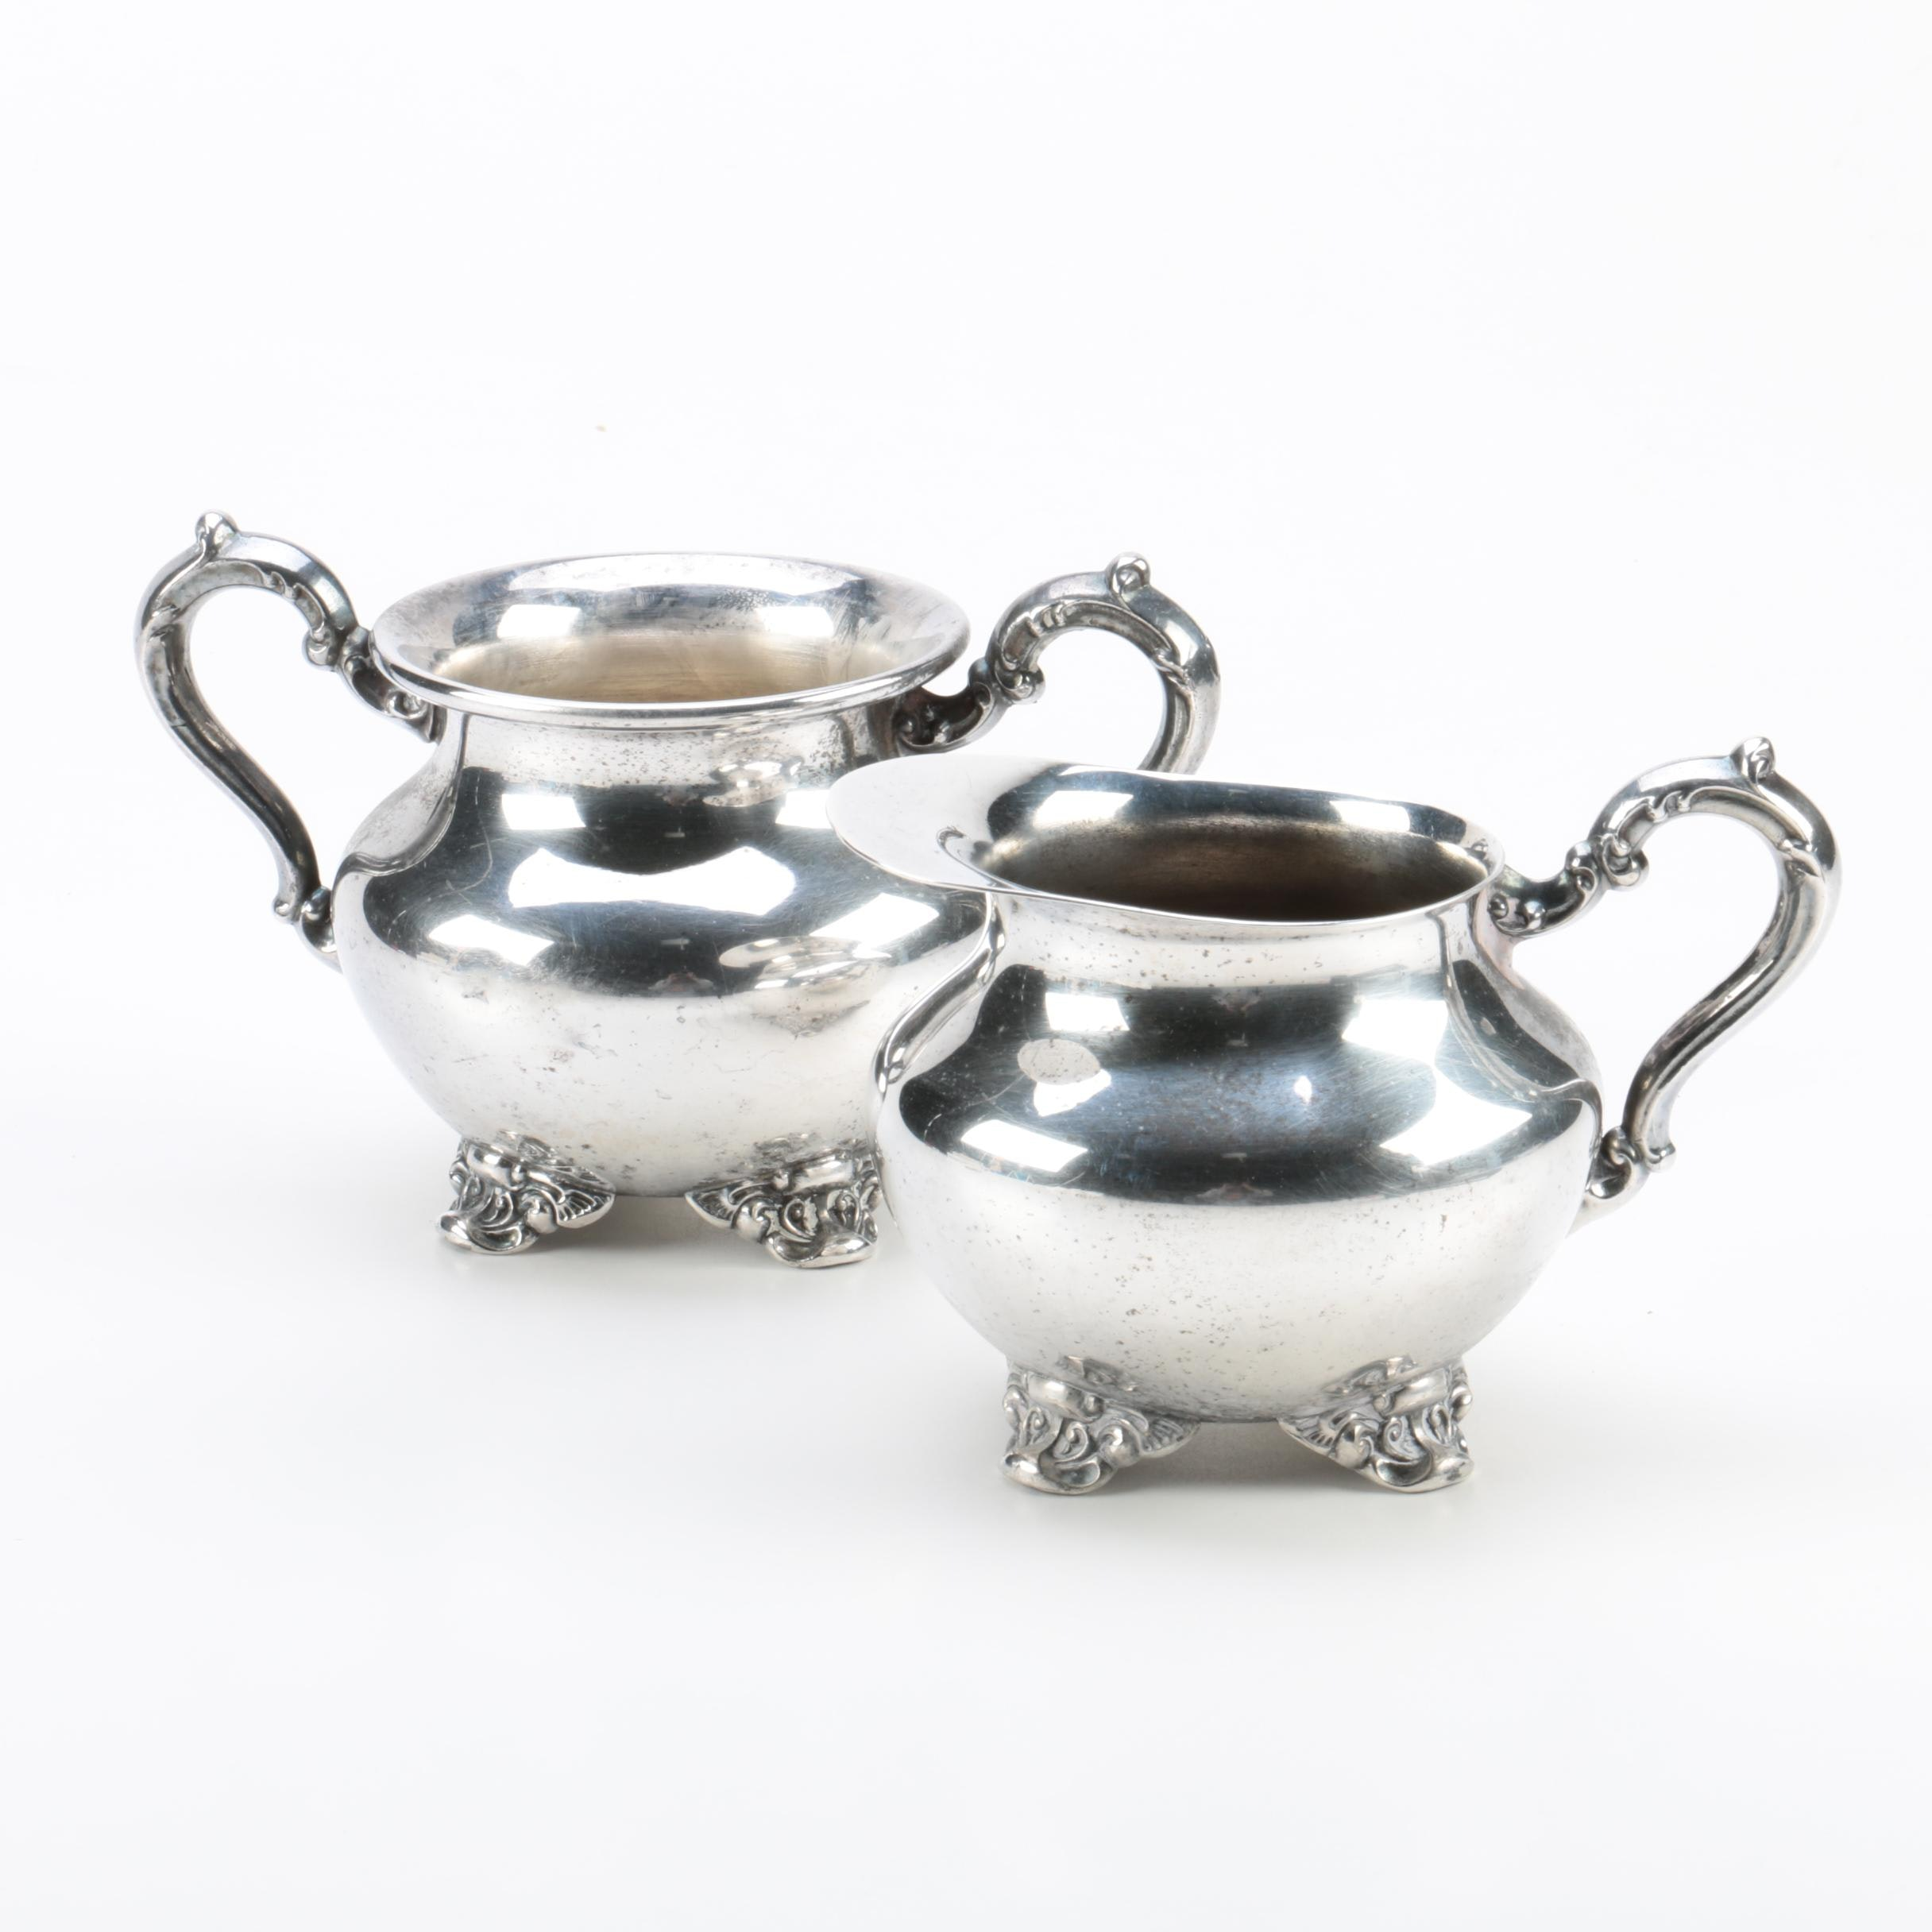 Poole Silver Co. Silver Plate Creamer and Sugar Bowl